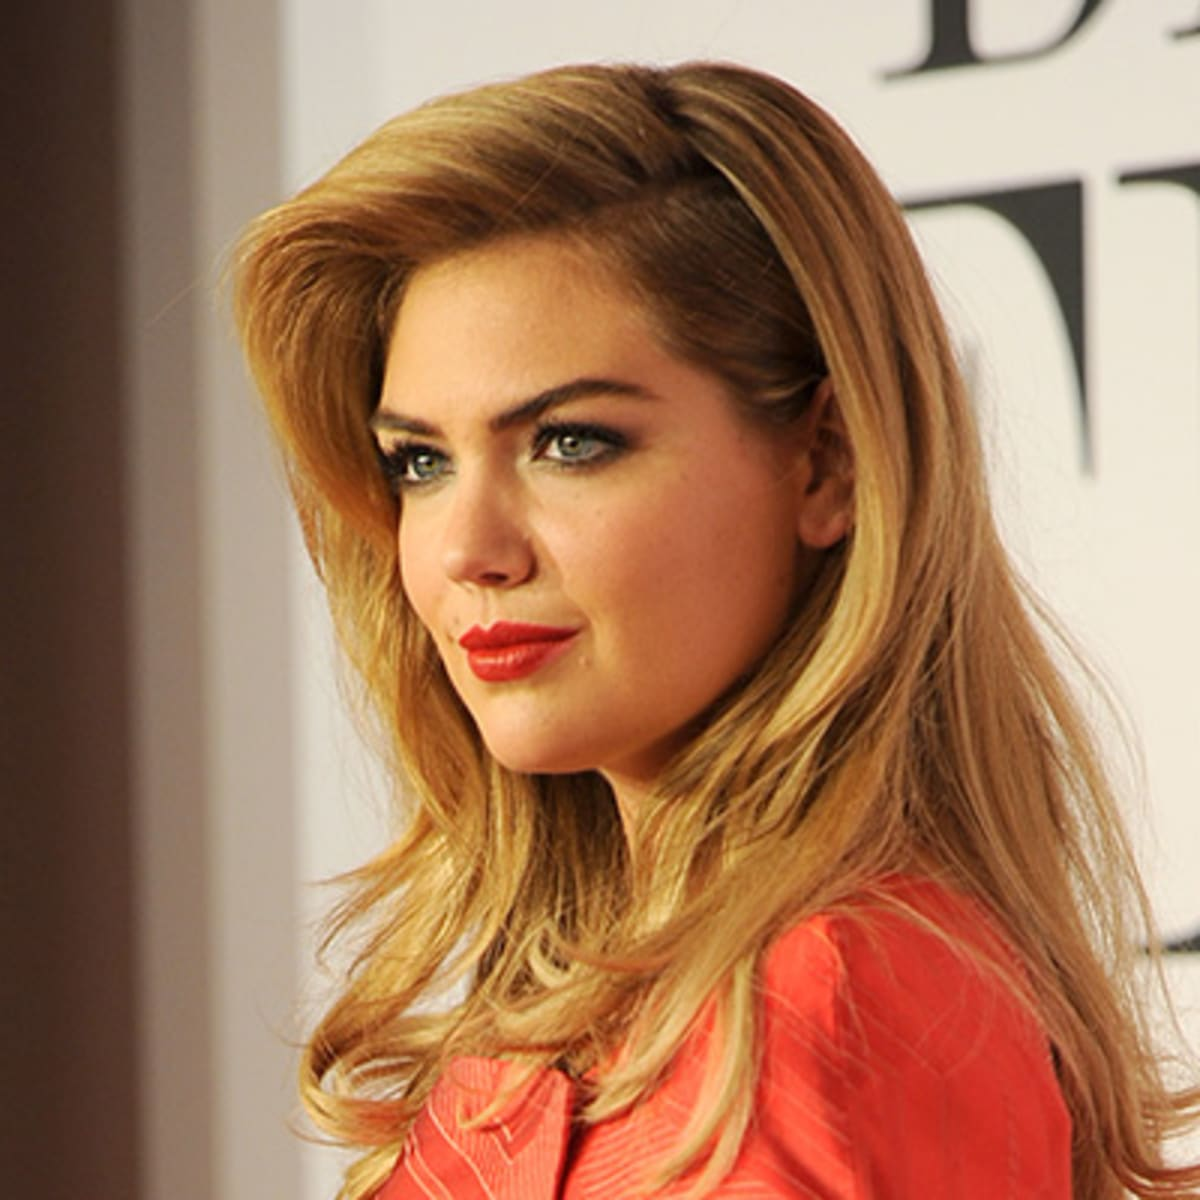 Kate Upton Icloud Pictures photo 11